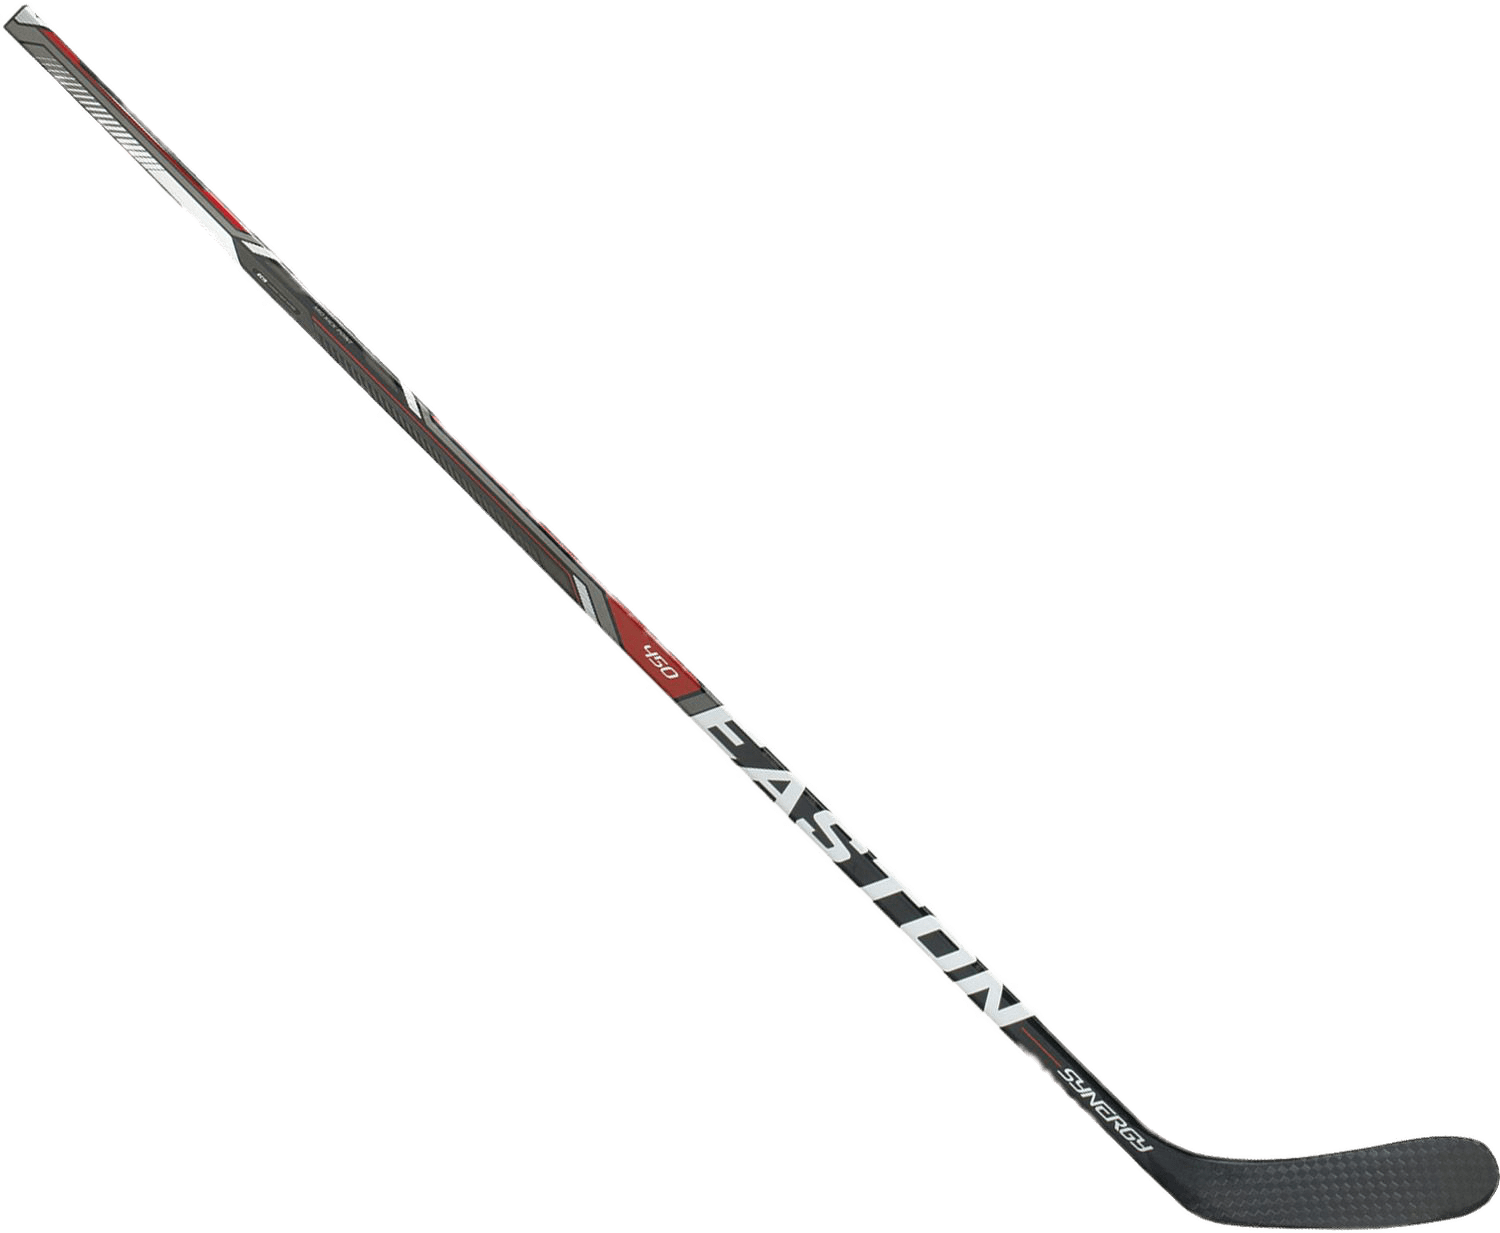 field hockey stick png